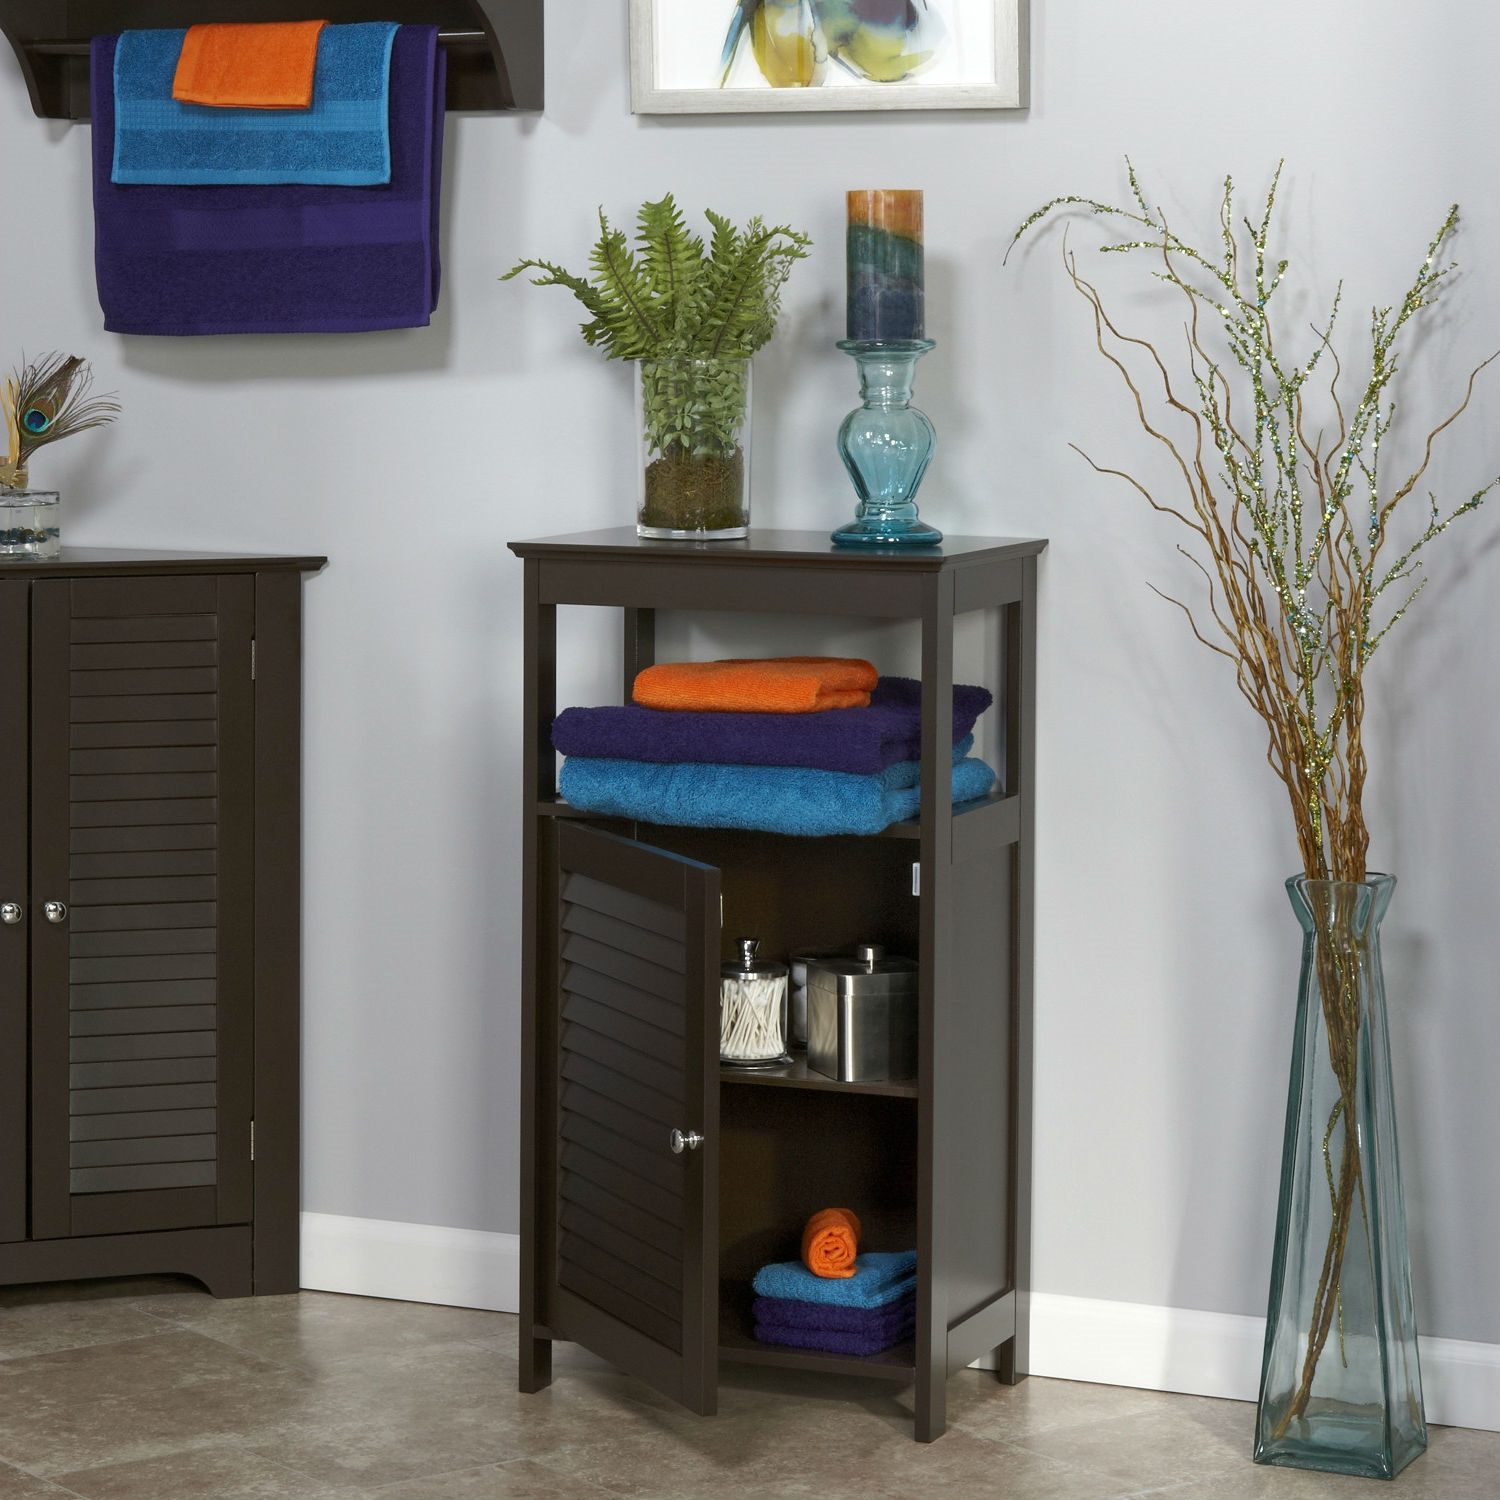 Modern Bathroom Floor Cabinet Free Standing Storage Unit In - Espresso bathroom floor cabinet for bathroom decor ideas